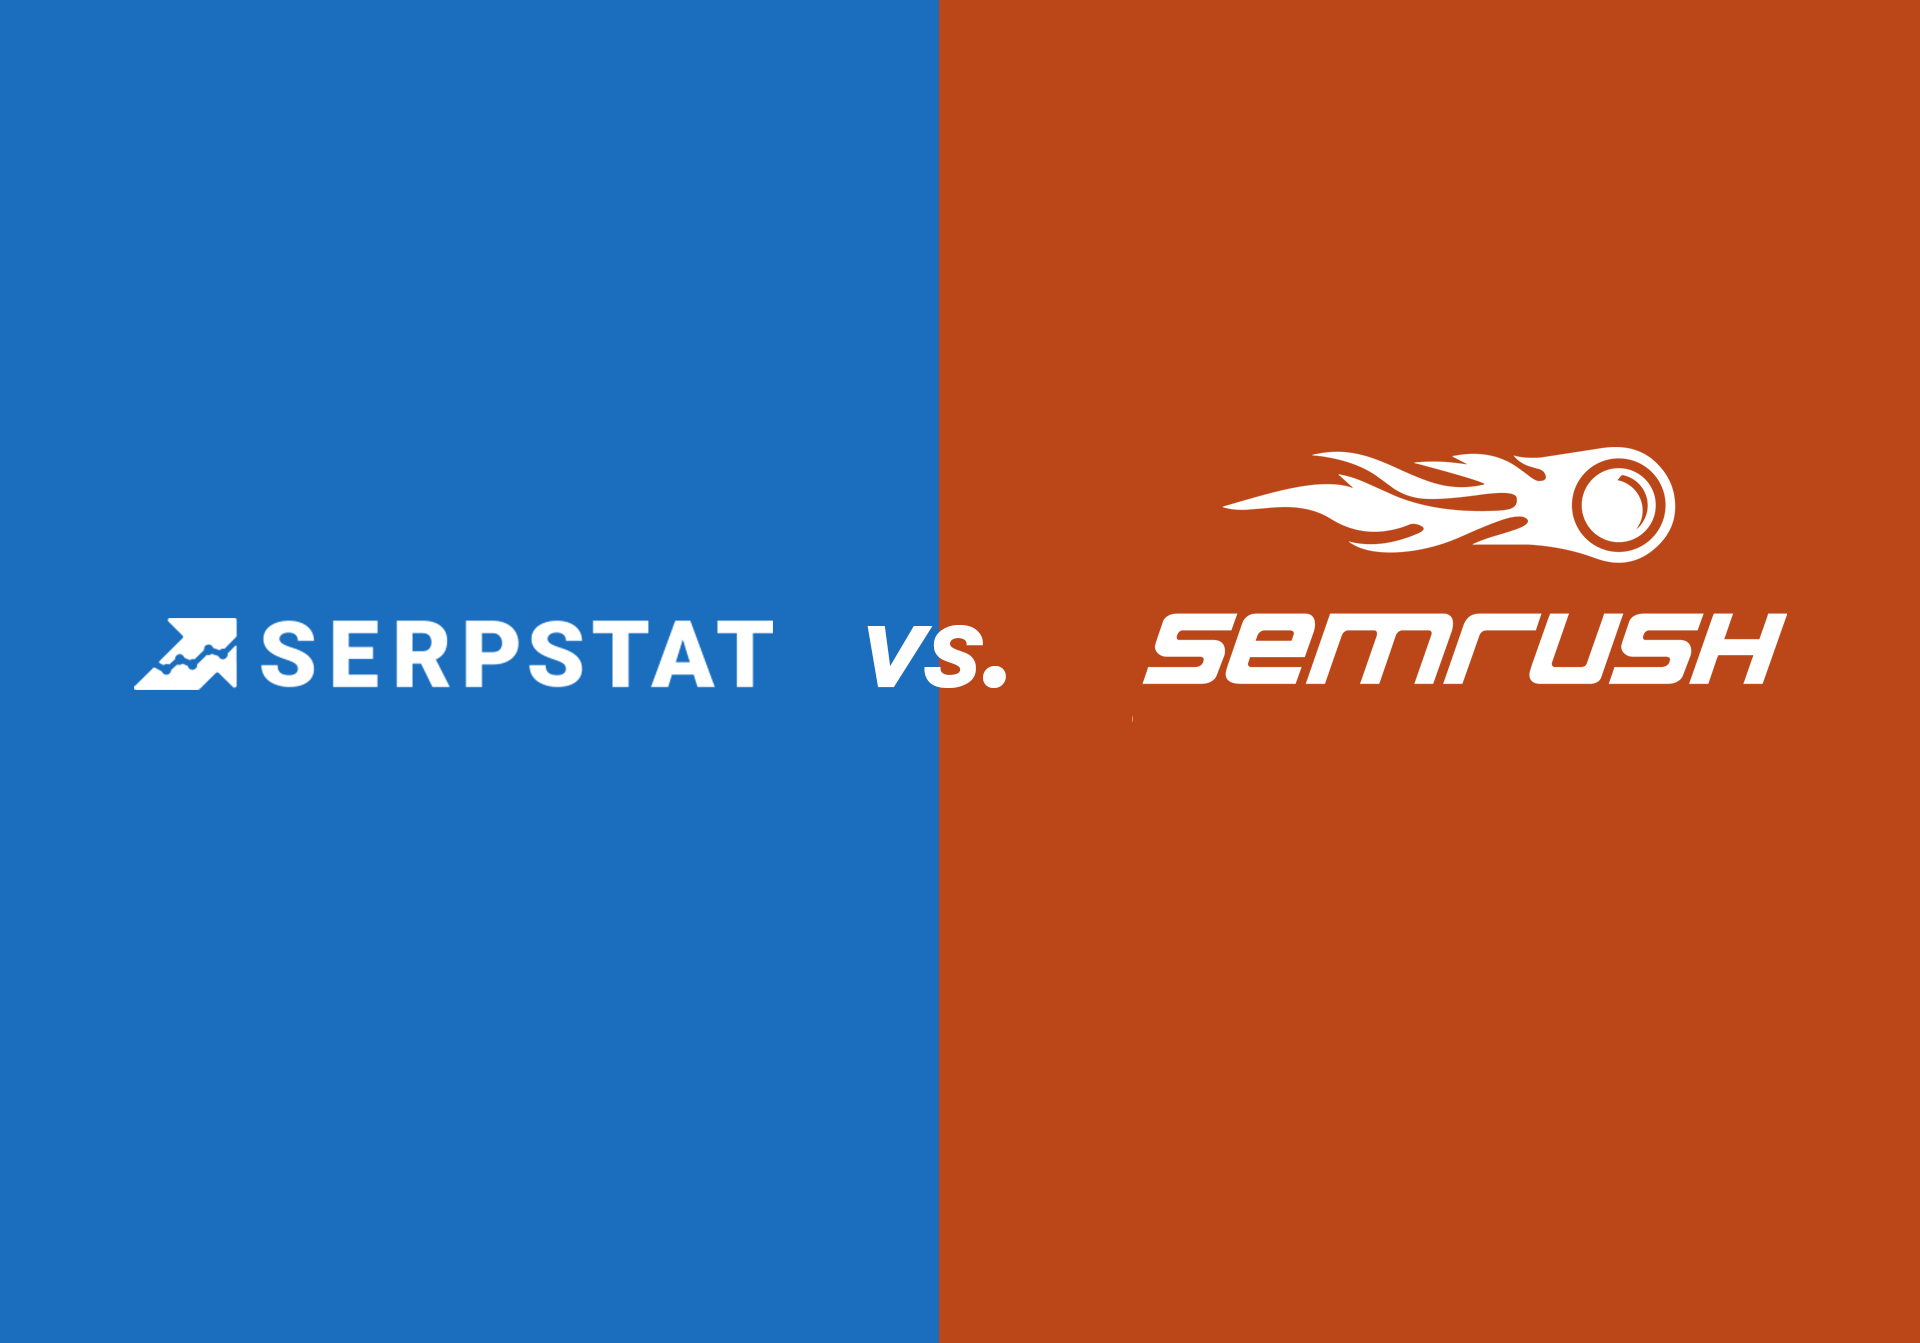 Sale Seo Software Semrush